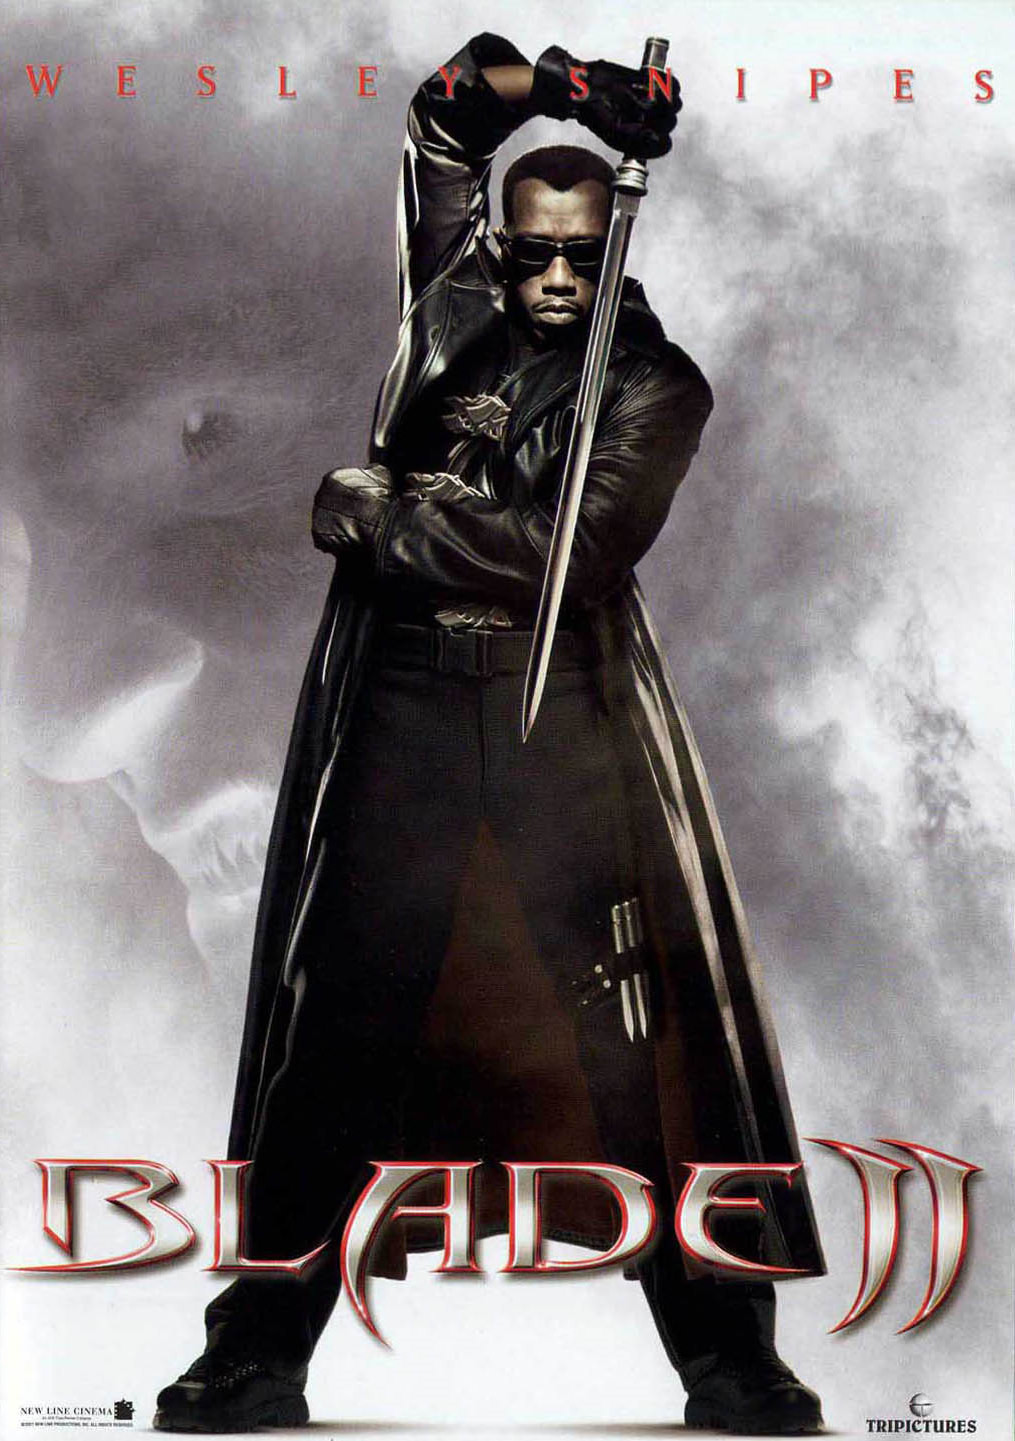 October 20th: Blade II (2002)